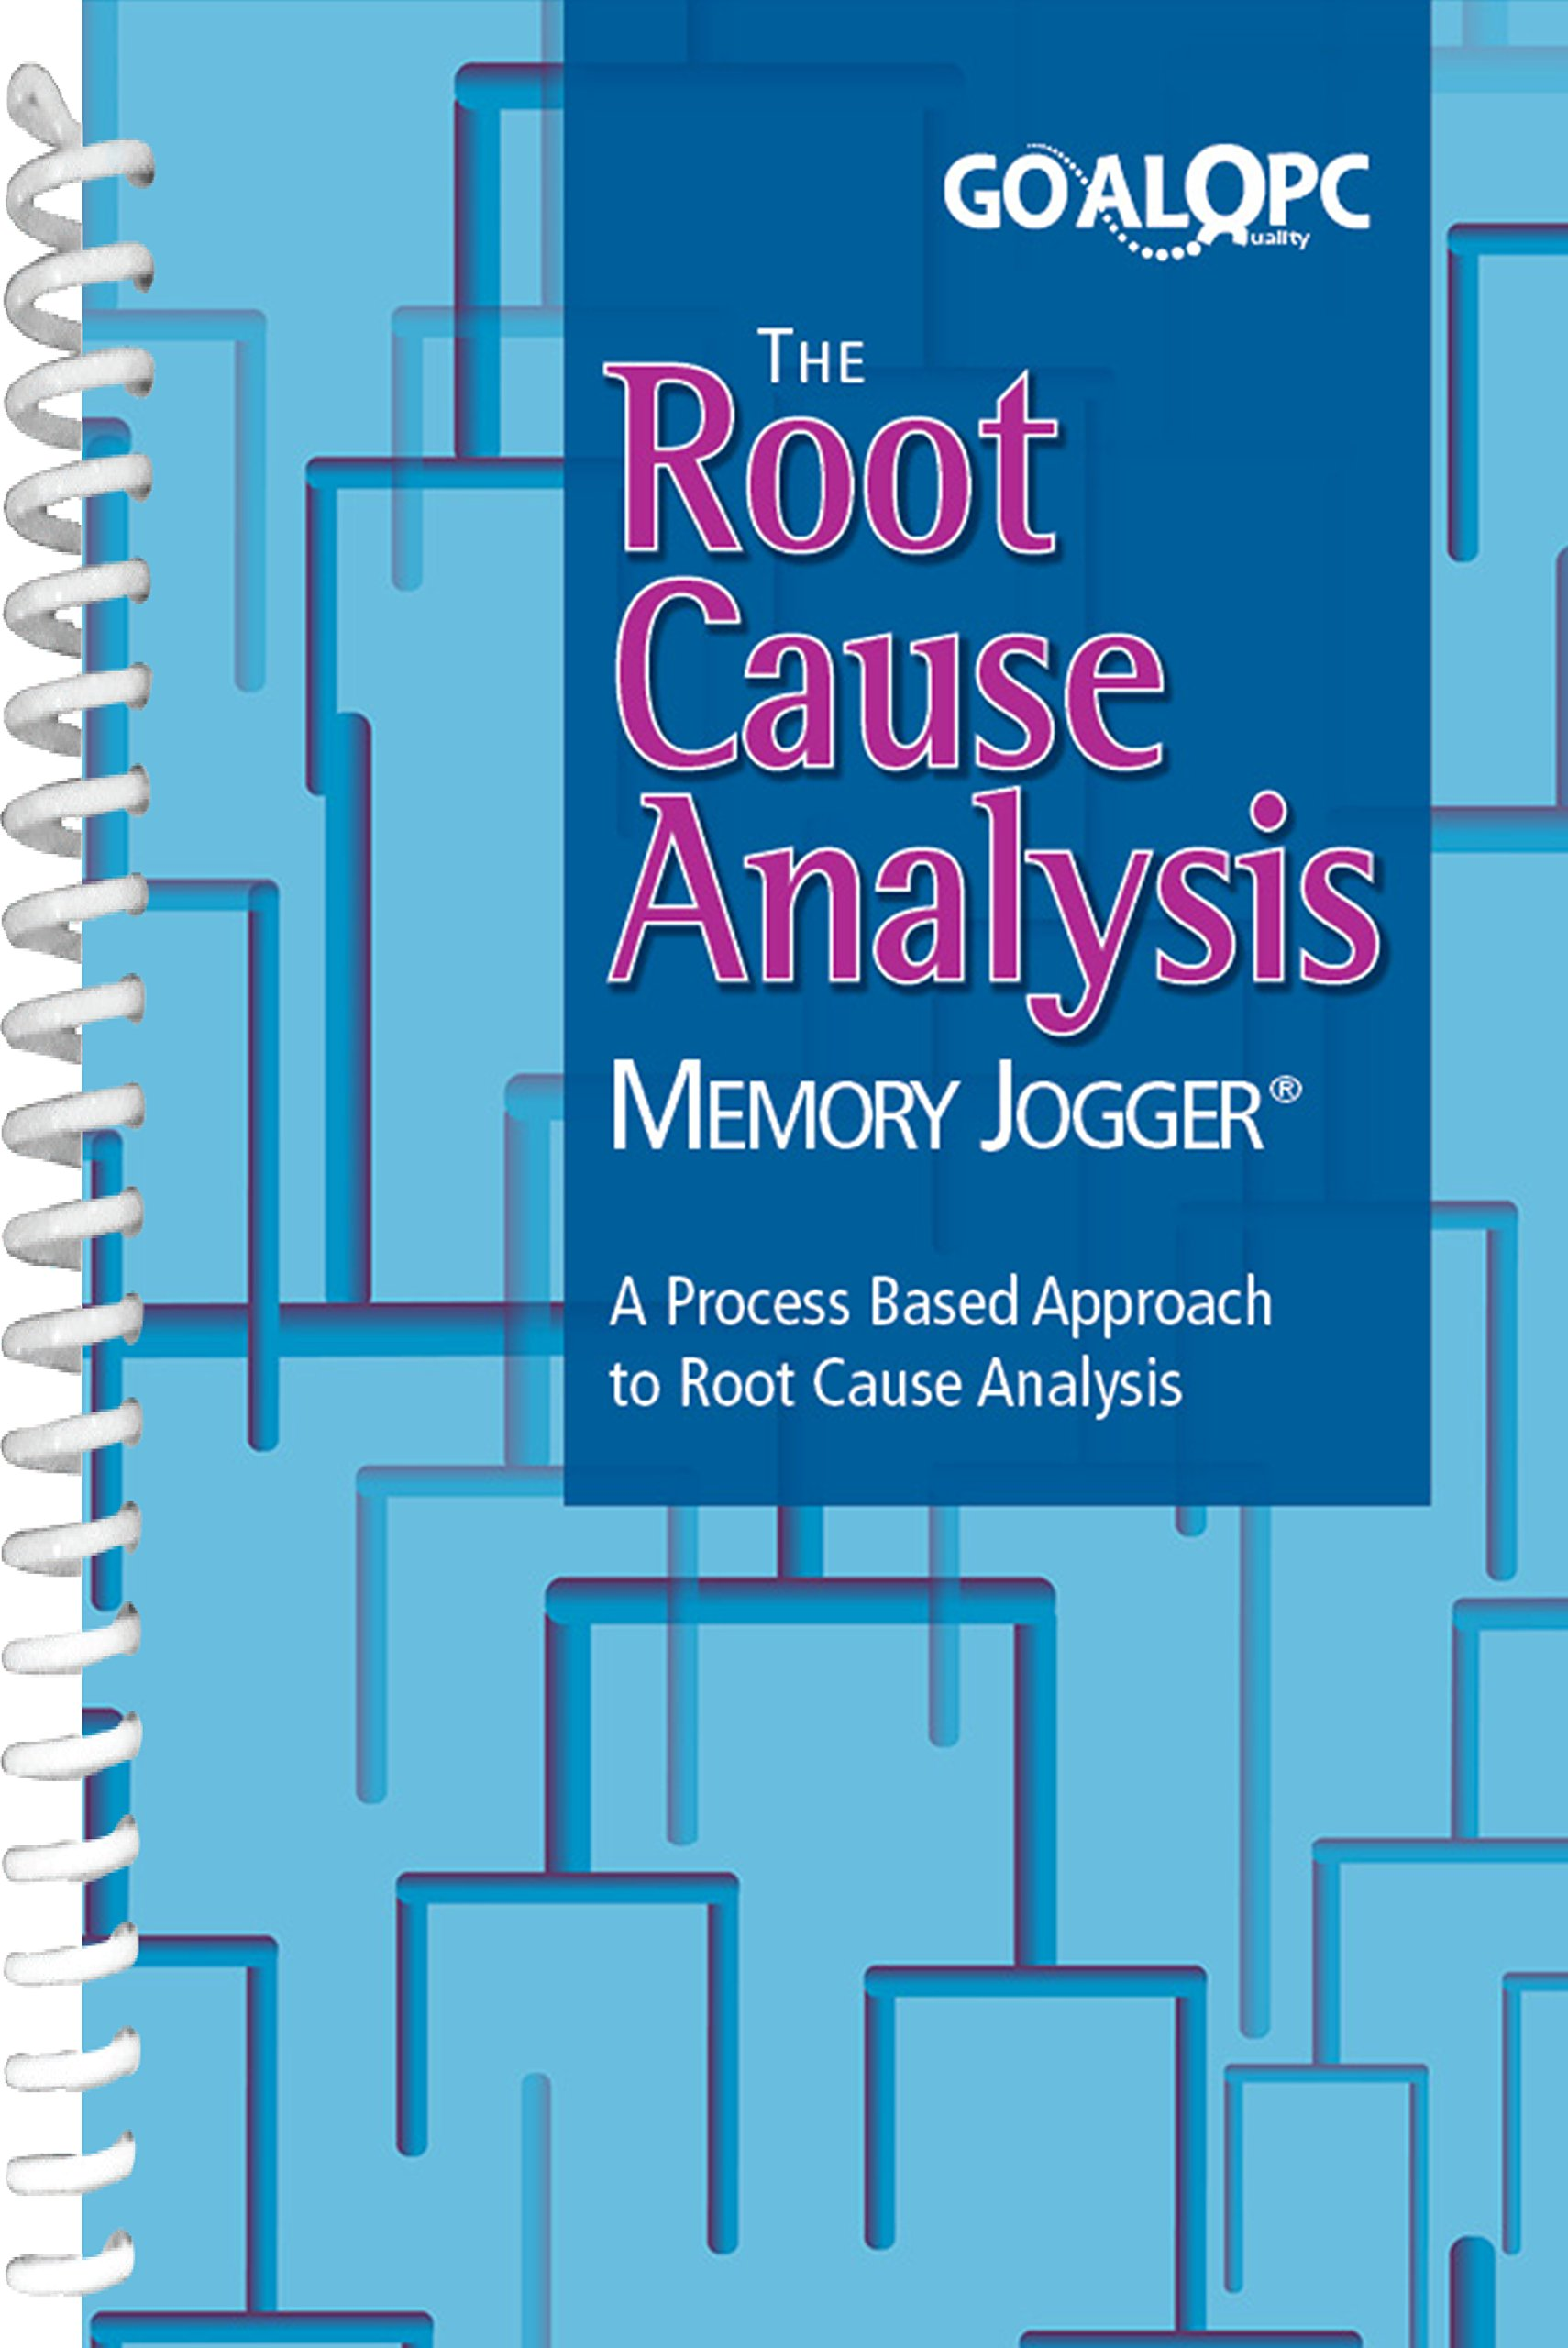 Root Cause Analysis Memory Jogger product image